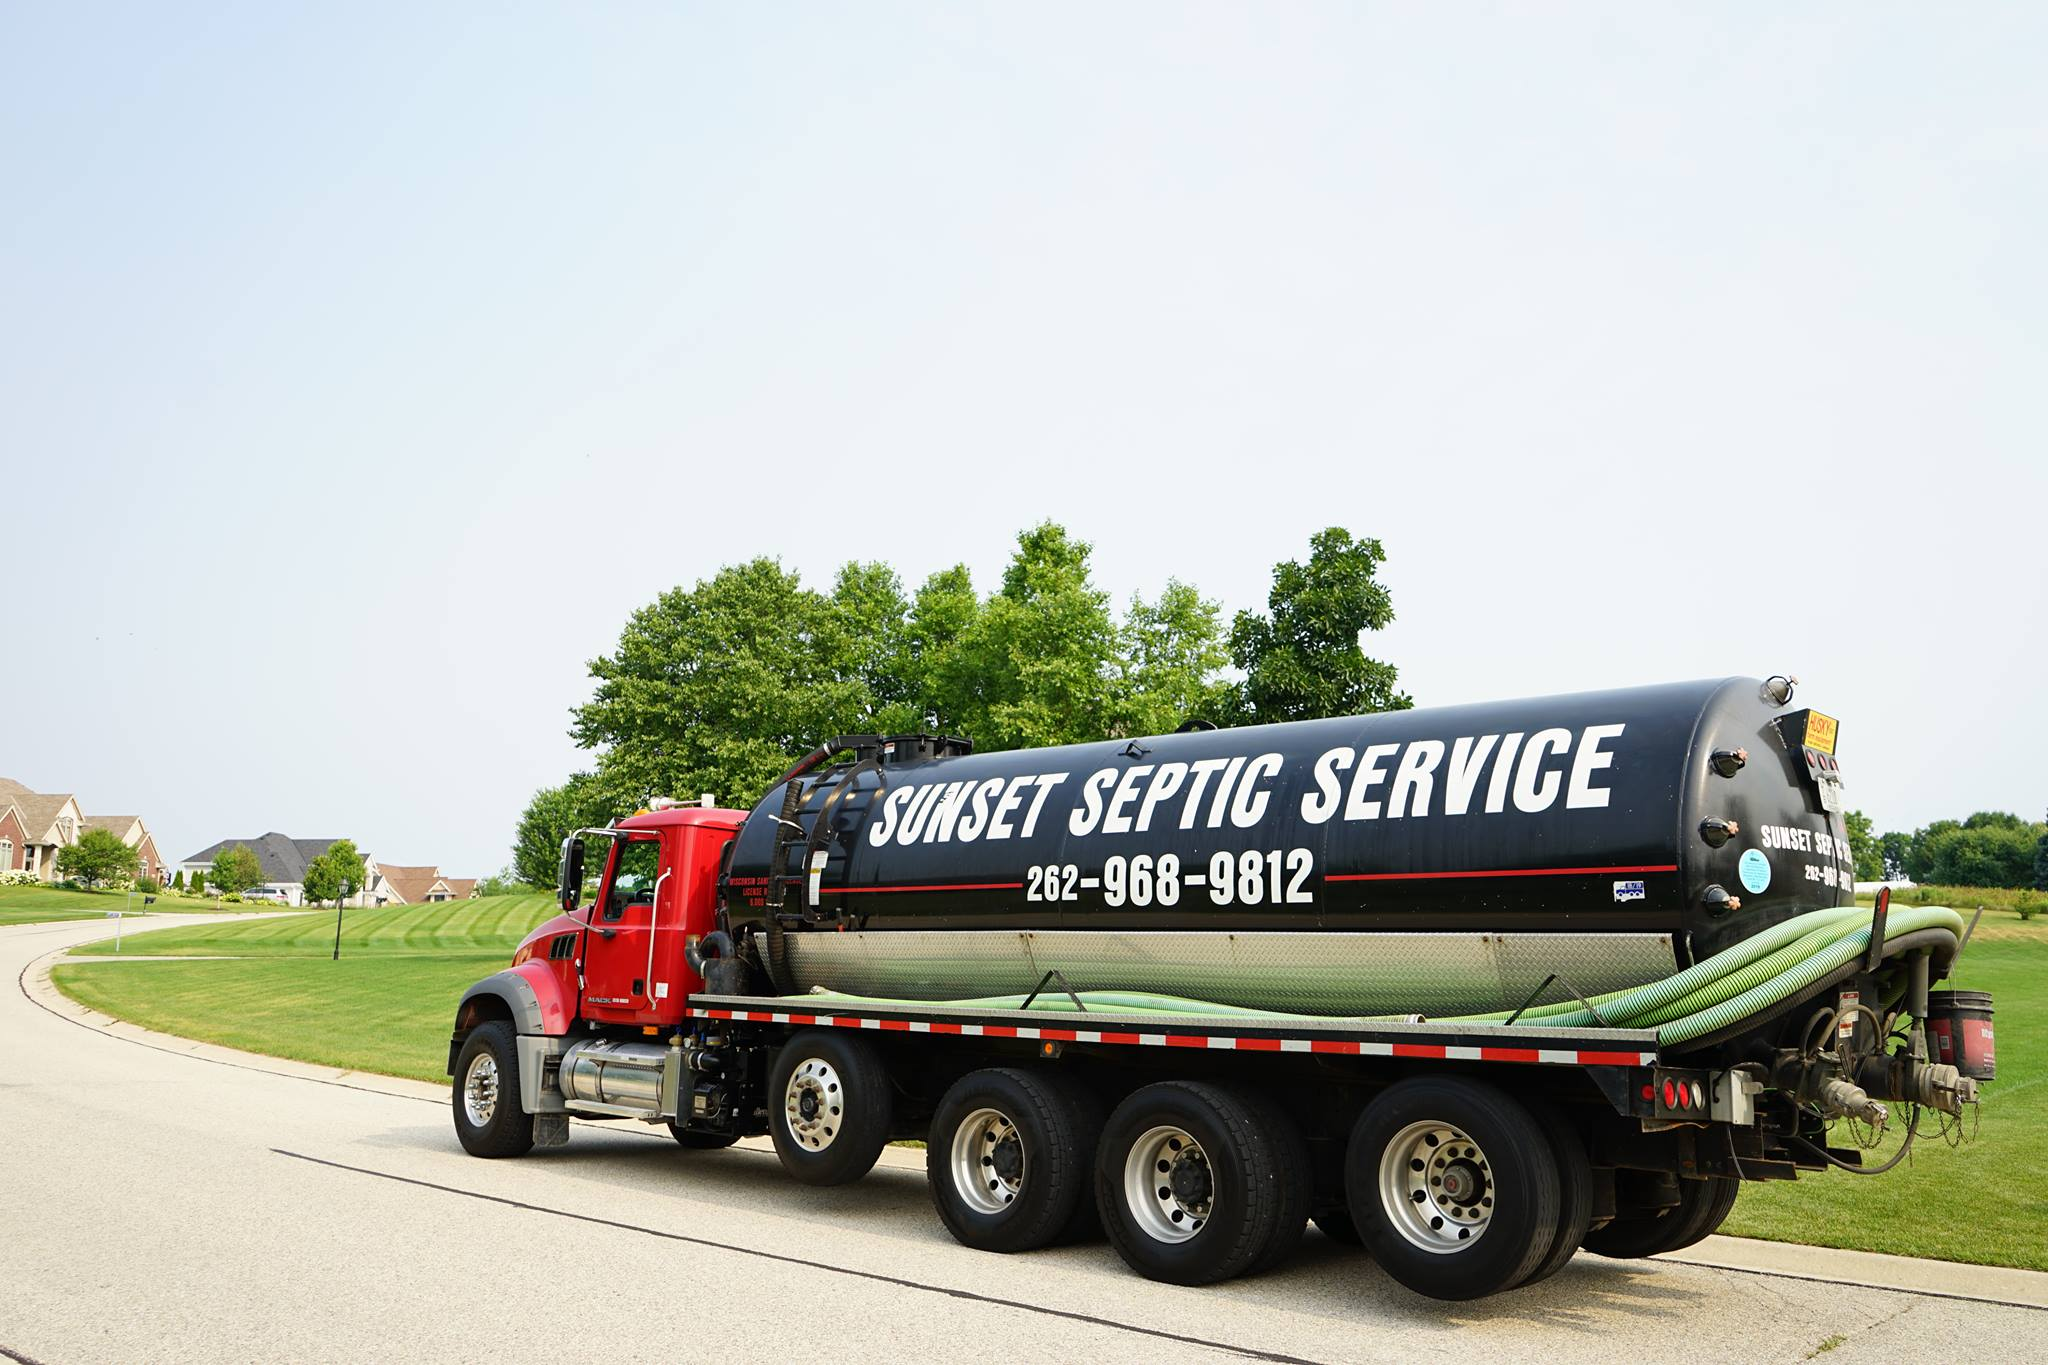 Save $10 On Septic Service - Call To Schedule: 262-968-9812